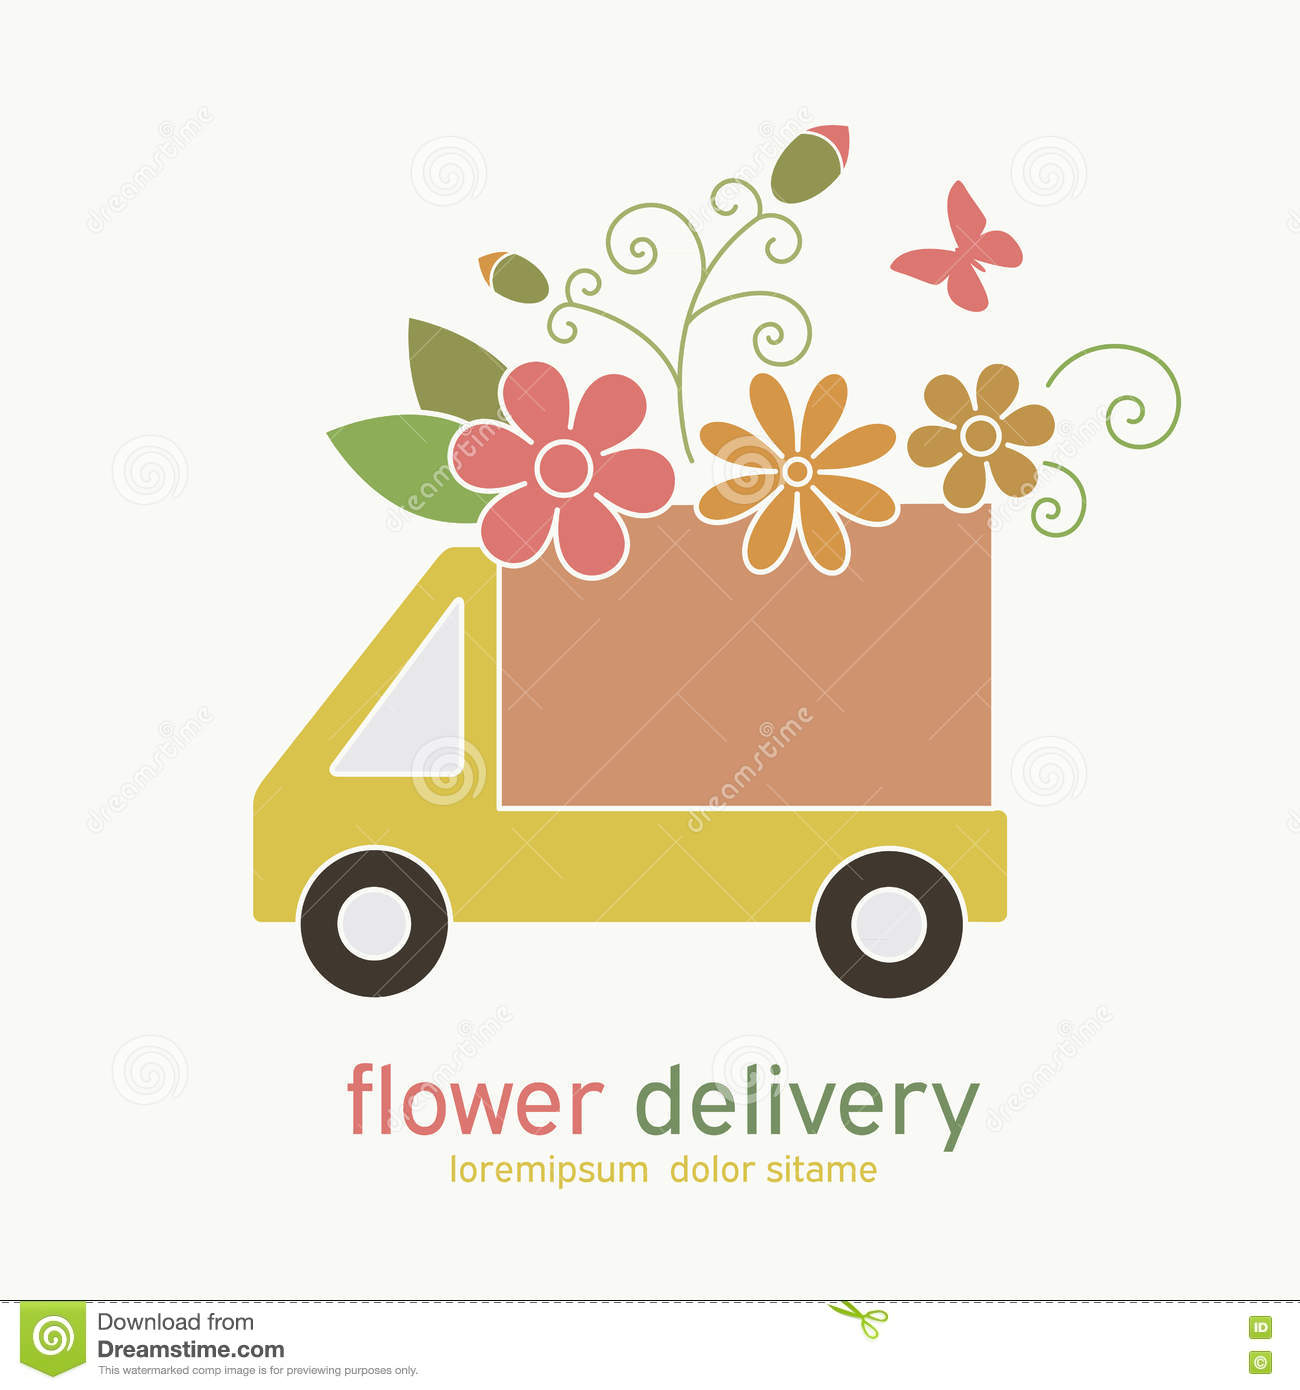 Colored Emblem Of Flower Delivery Truck Stock Vector Illustration